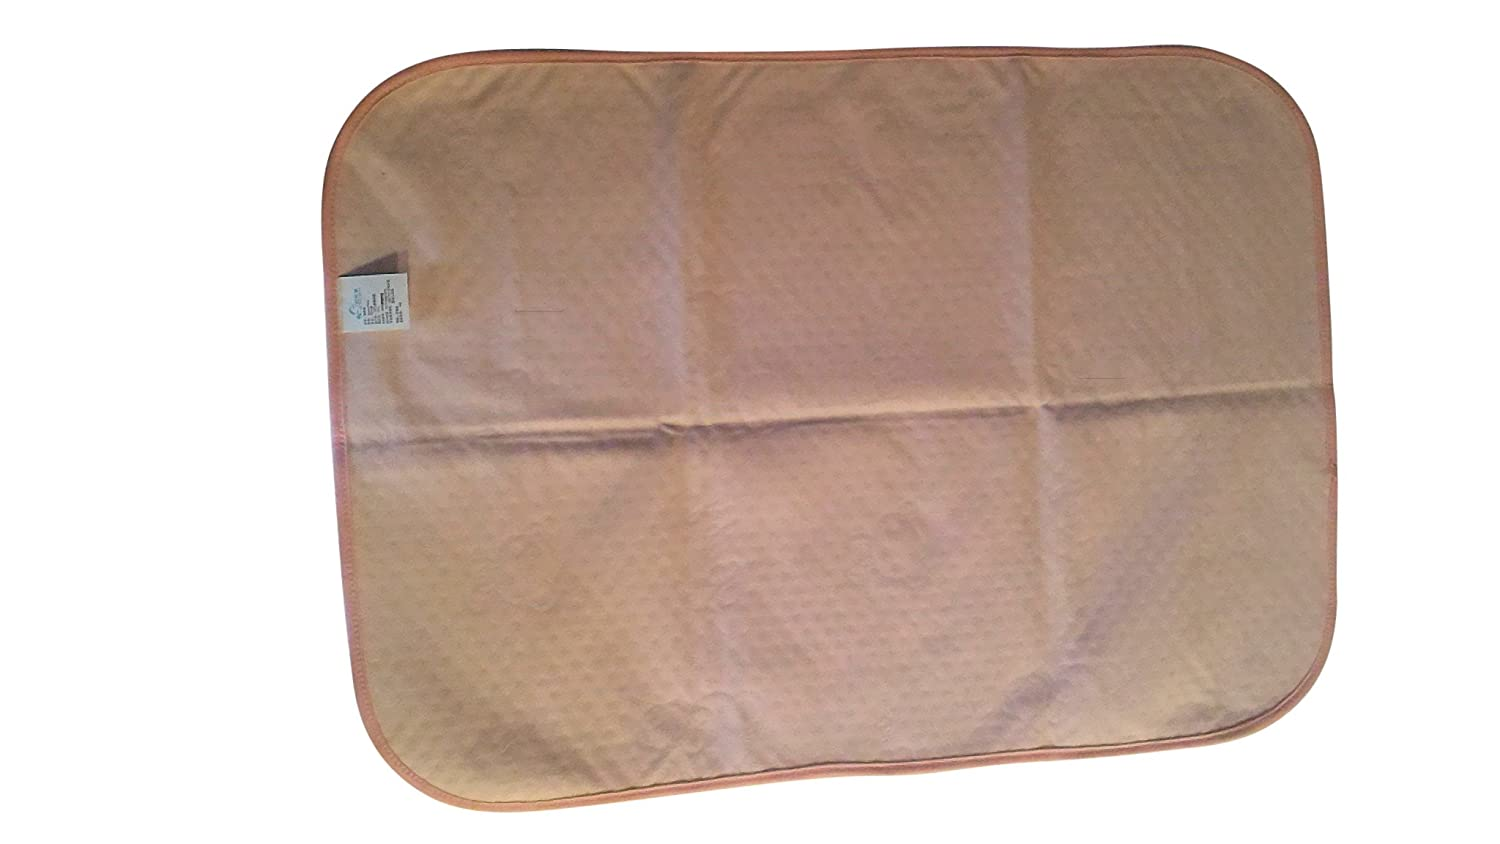 Waterproof Changing Pad Liners Protectors Pink, 11 x 17 Bed Sheet Protector for Women or Seniors Great Gift 4 Layers Large Protector for Baby Changing Pad